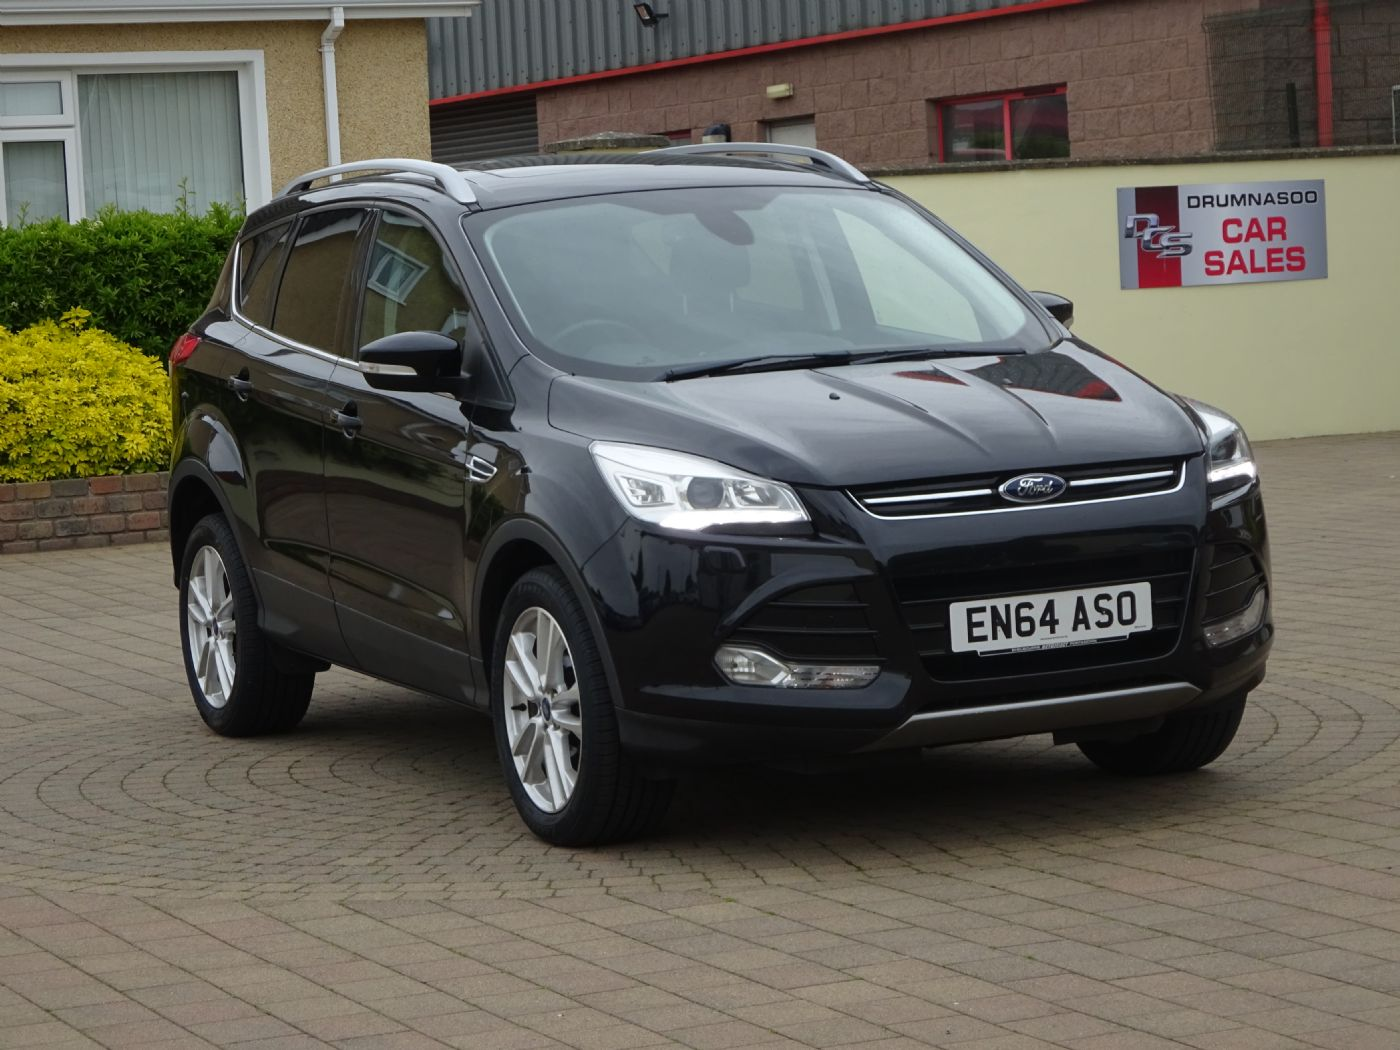 Ford Kuga Titanium X 2.0 TDCI, Electric Sun - Roof, Leather seats